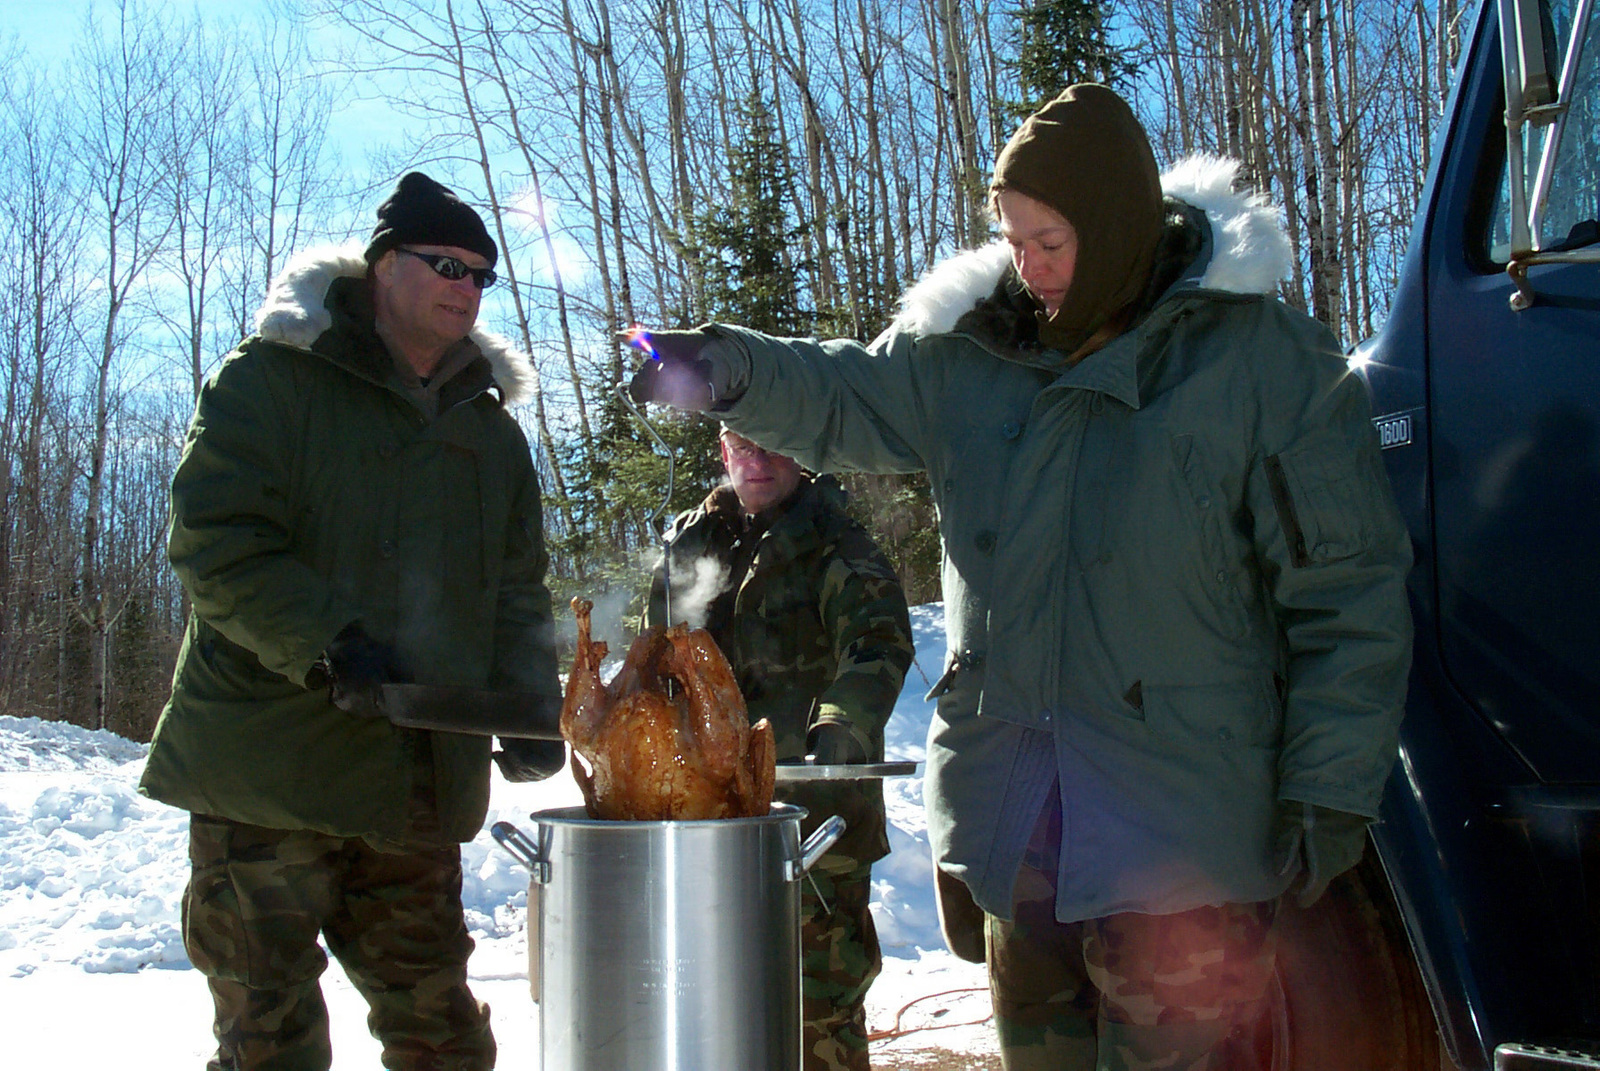 US Air Force (USAF) personnel assigned to the 148th Fighter Wing (FW), Minnesota Air National Guard (ANG), cook a deep fried turkey for lunch at the Pike Lake Crossing remote communication base. The Guardsmen are checkpoint volunteers for the annual 400-mile John Beargrease Sled Dog Marathon held along the north shore of Lake Superior, Minnesota (MN)